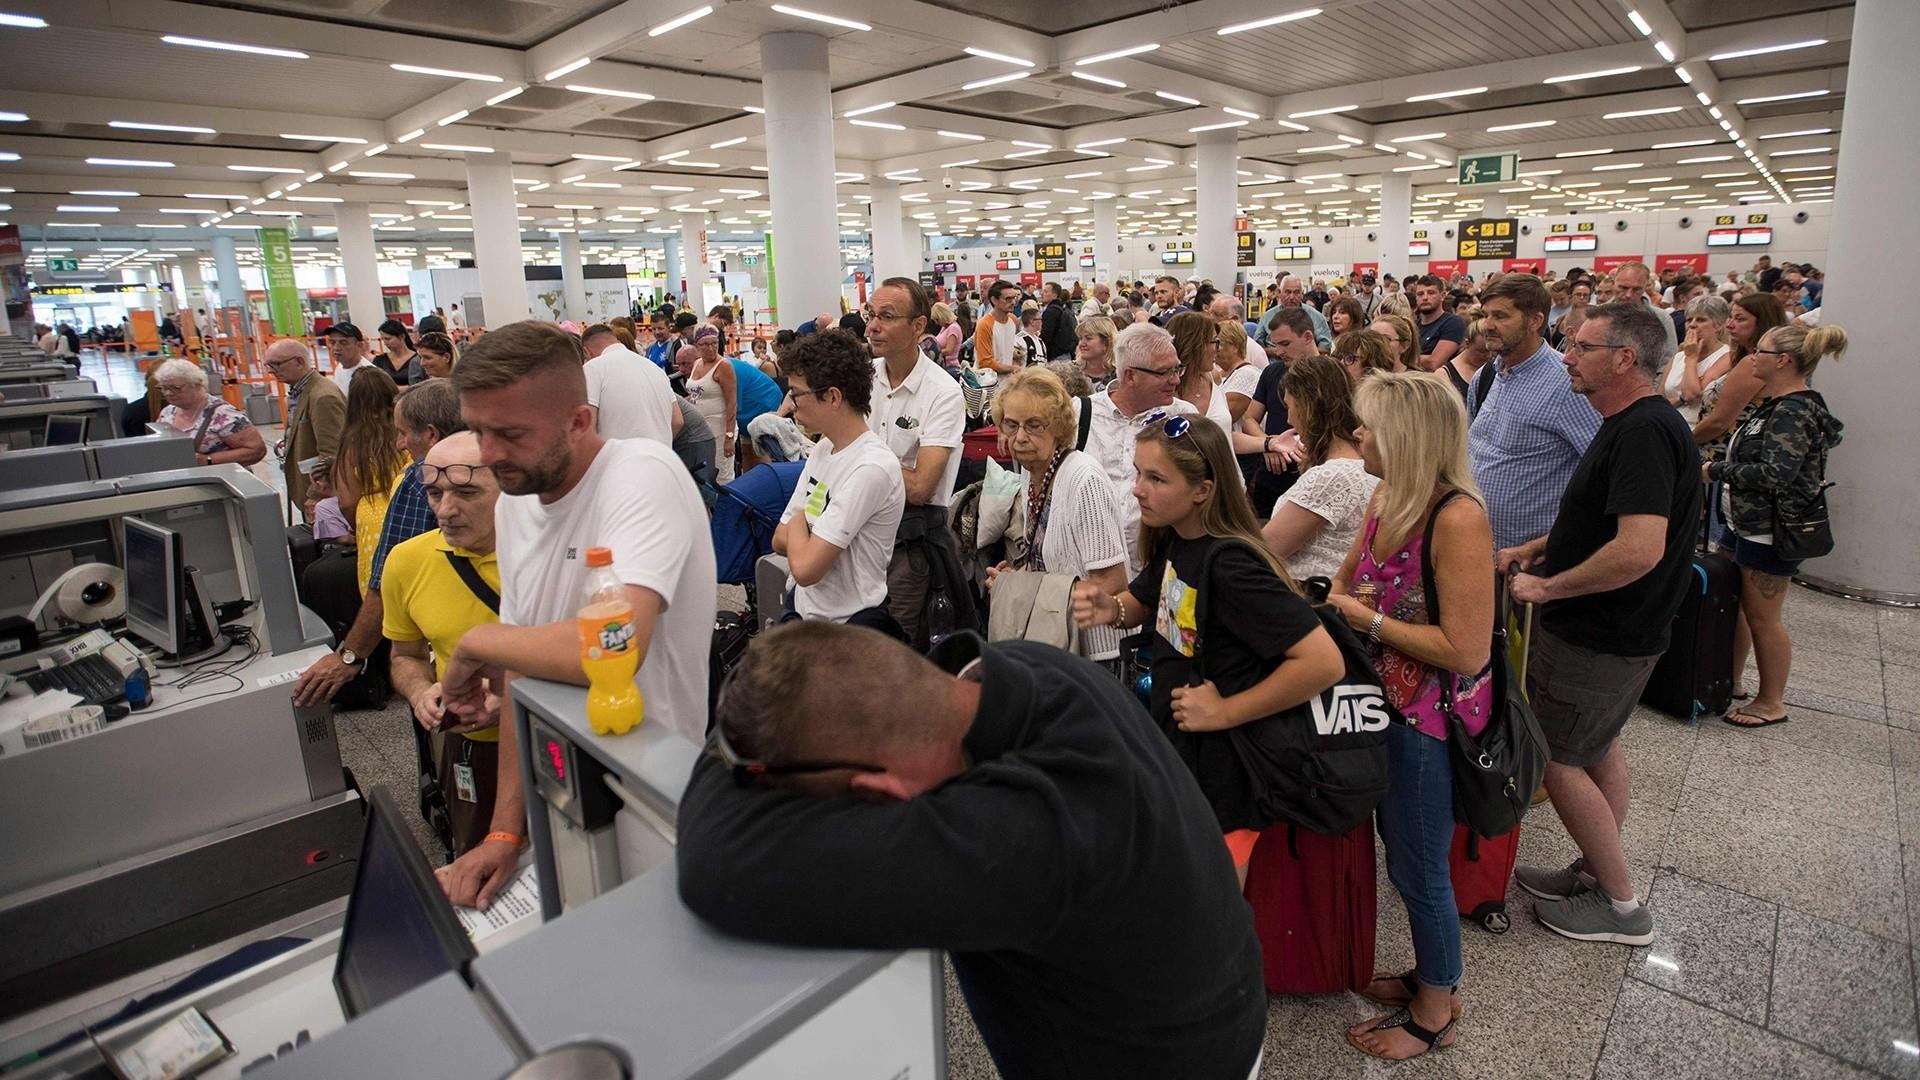 British travel firm Thomas Cook collapses, strands 150,000 vacationers